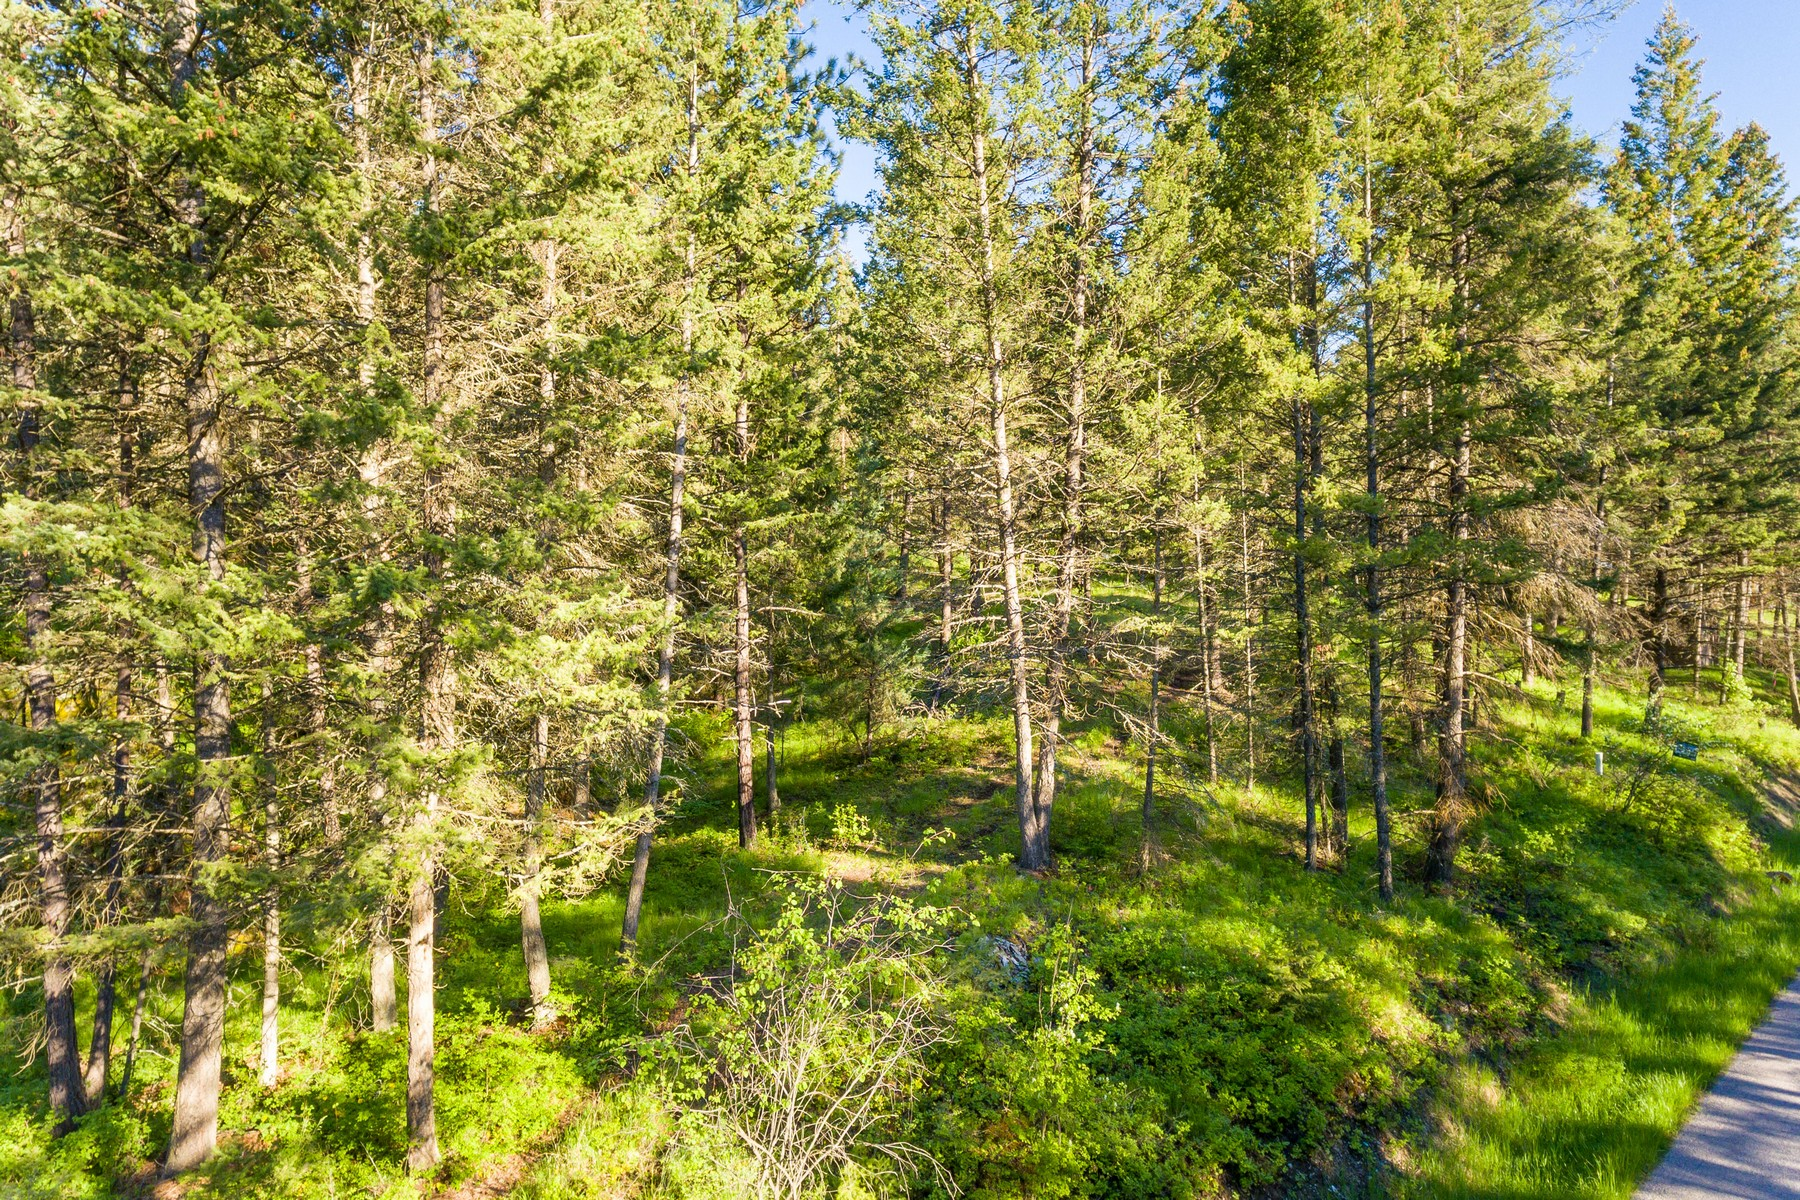 Land for Sale at 110 Grandview Terrace, Lakeside, MT 59922 110 Grandview Terr Lakeside, Montana 59922 United States